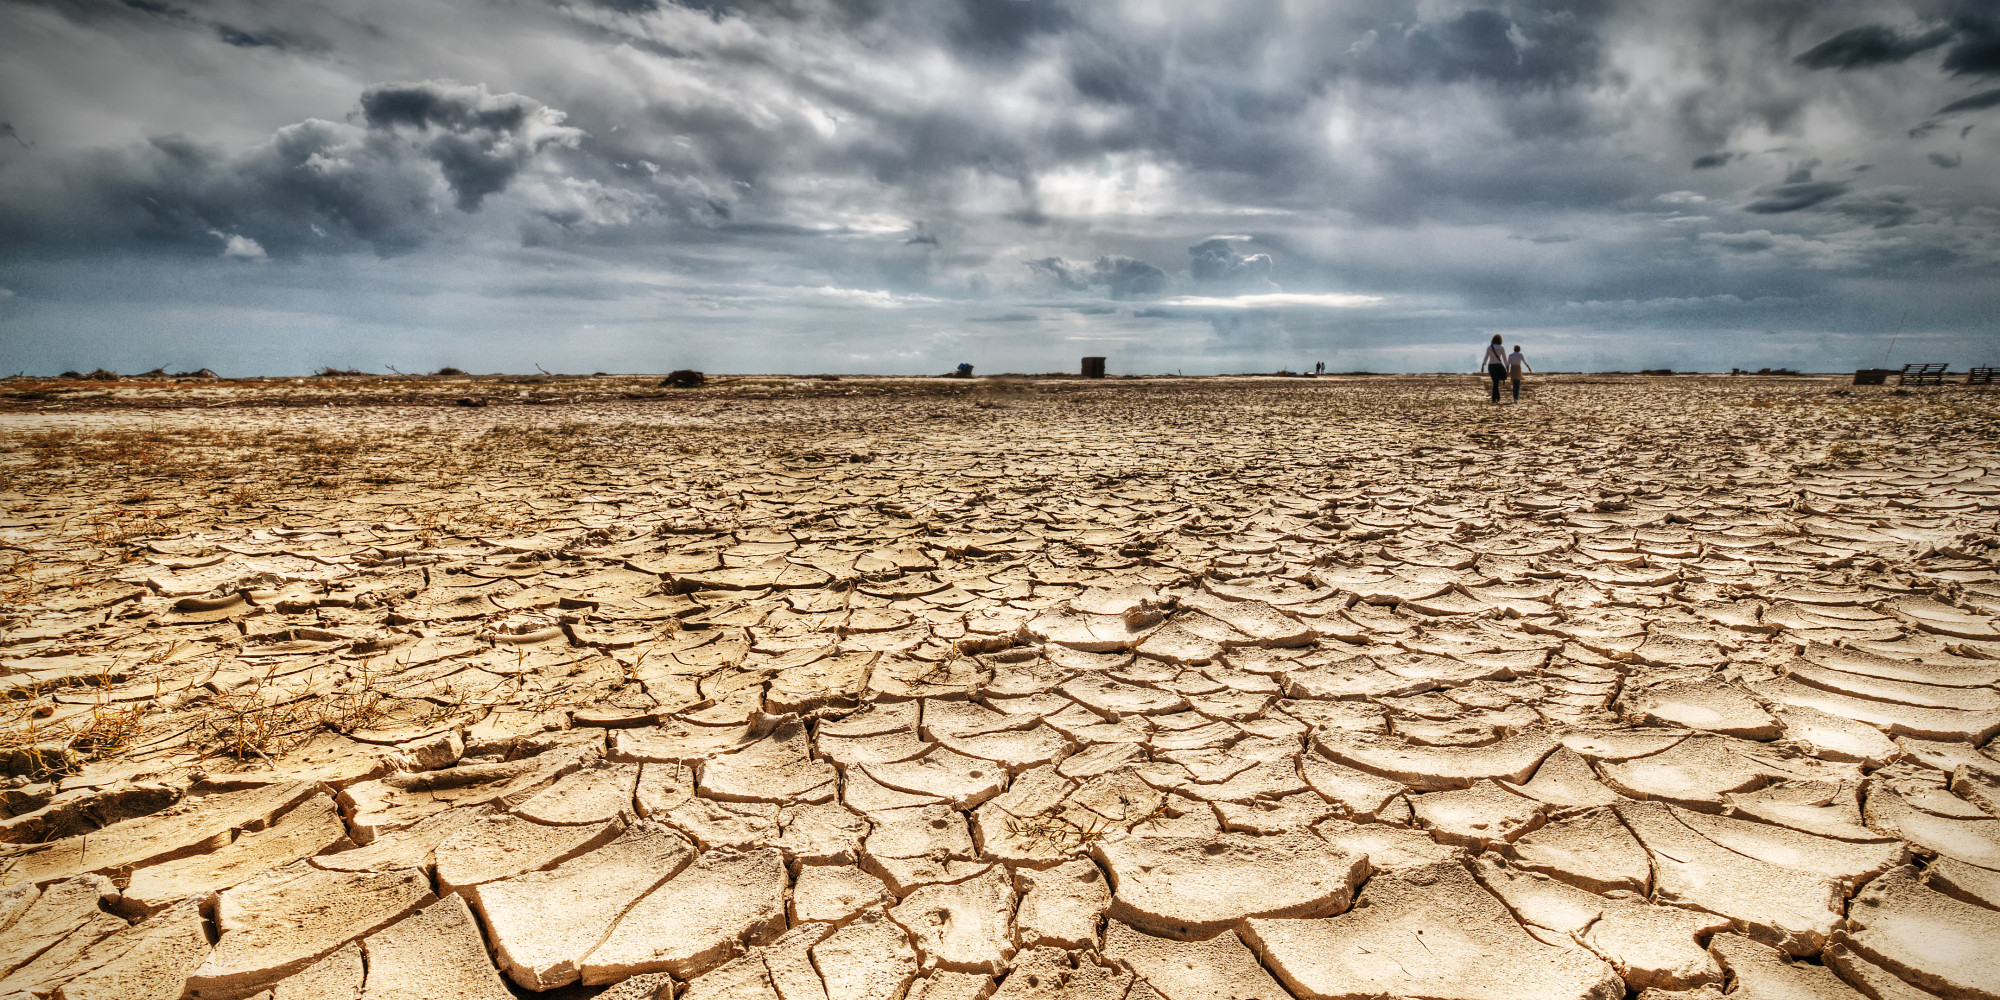 Landscapes are becoming drier. Photo: The Huffington Post